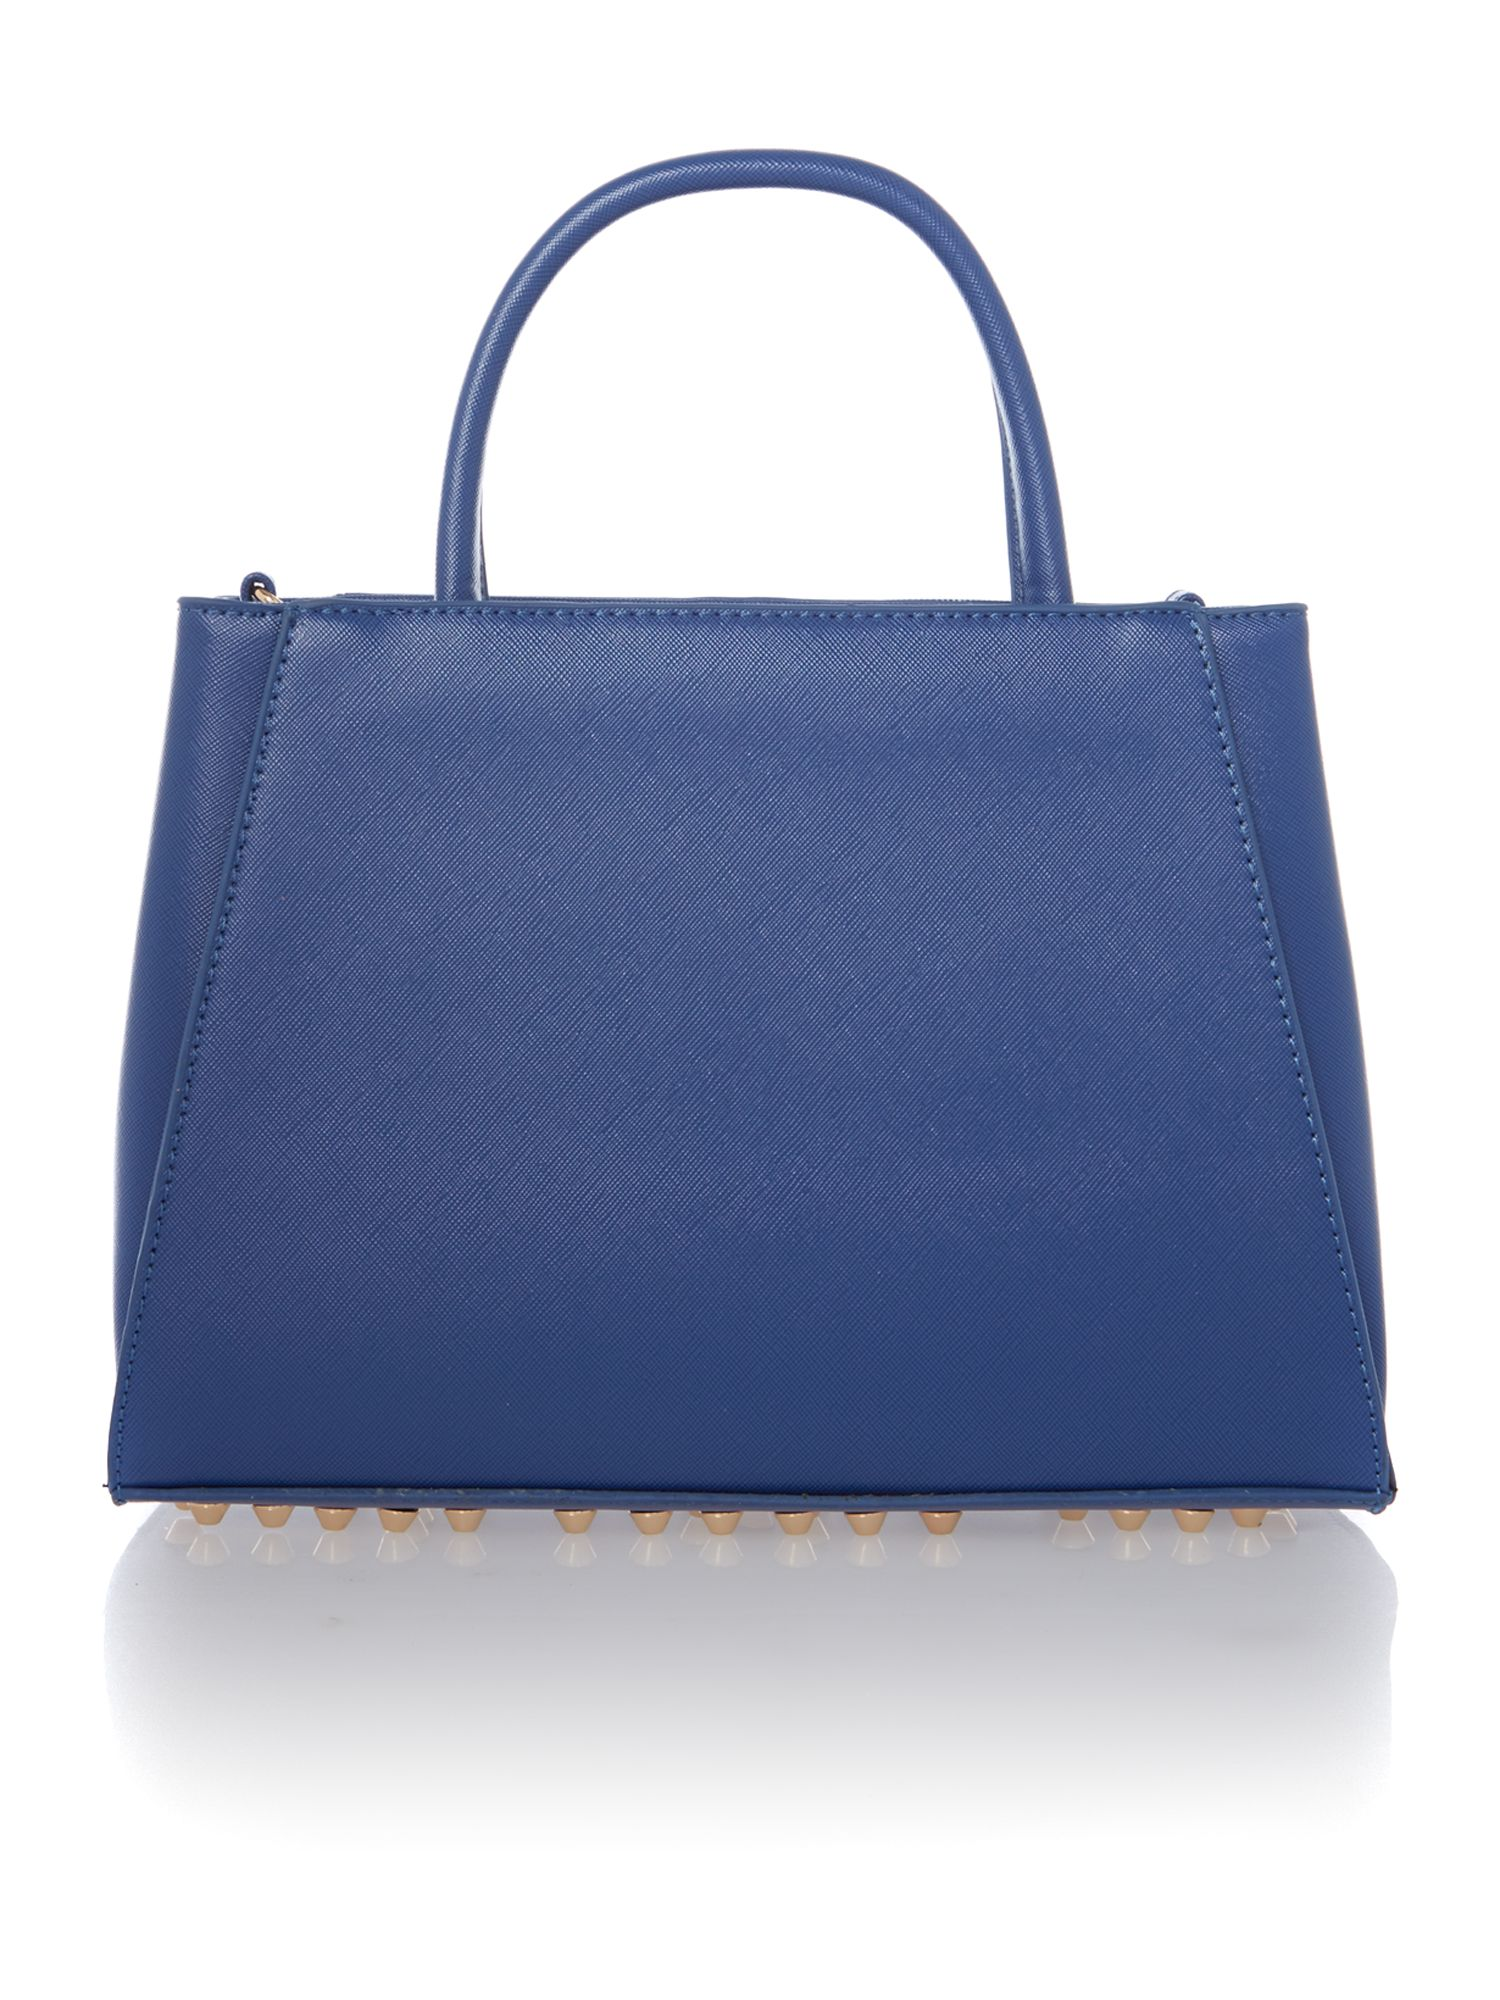 Eternity blue cross body tote bag